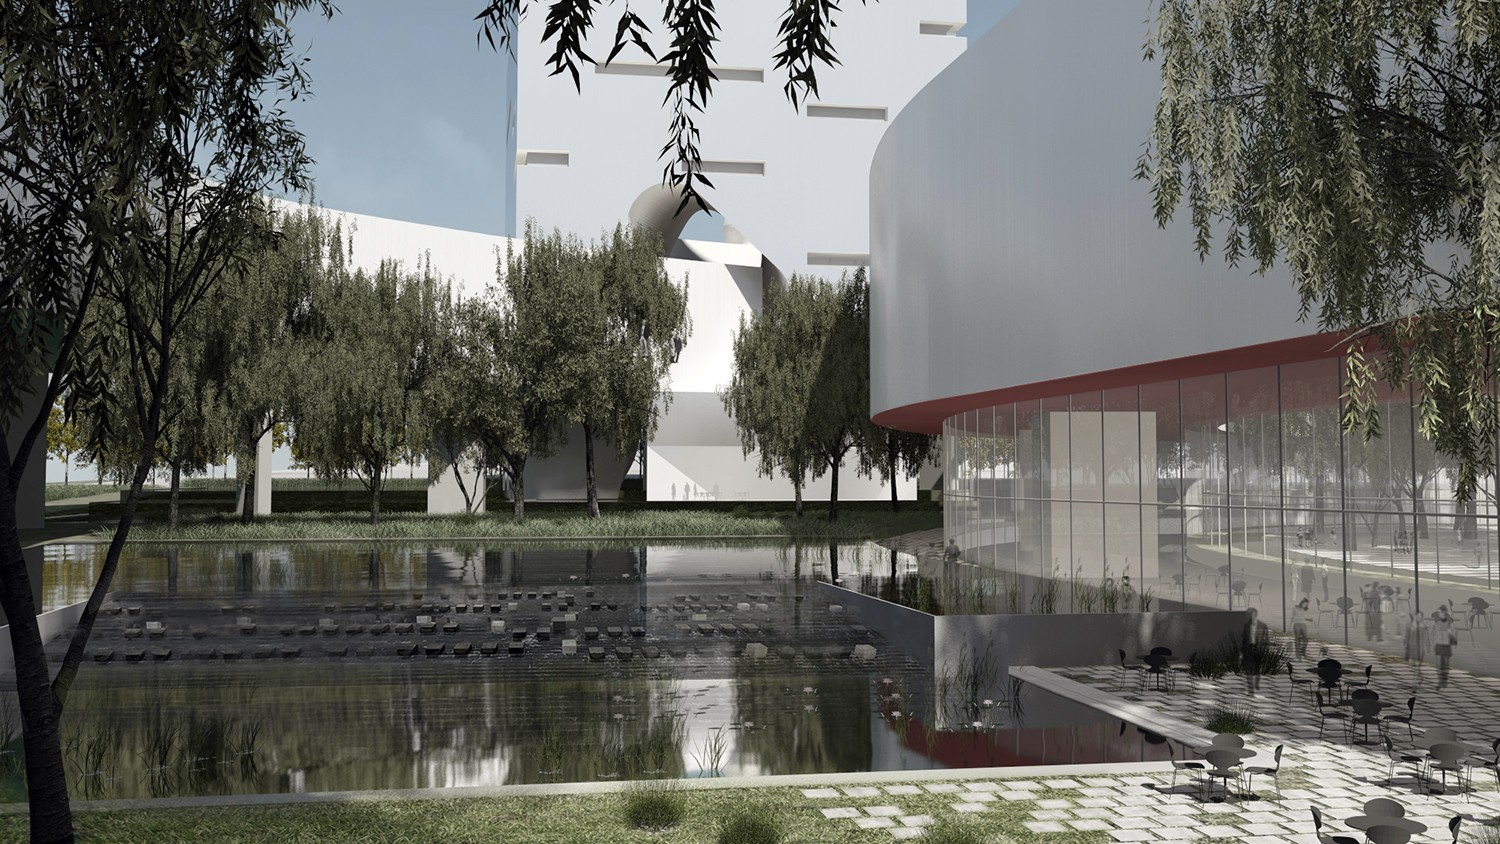 https://s3.us-east-2.amazonaws.com/steven-holl/uploads/projects/project-images/StevenHollArchitects_Qingdao_20131022_Cafe_edited_03_Final_WH.jpg